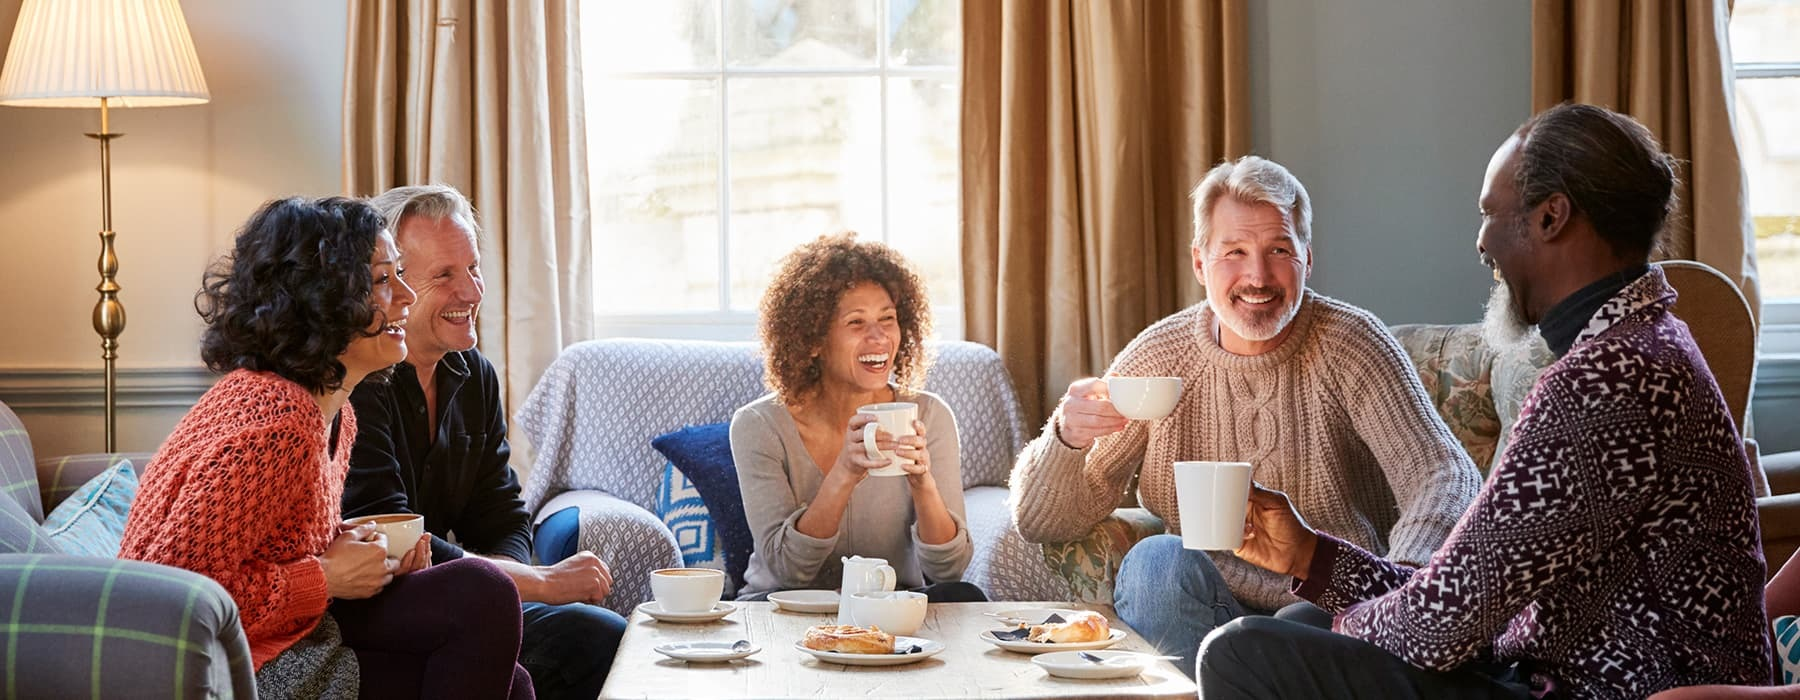 lifestyle image of a group laughing and talking on a couch